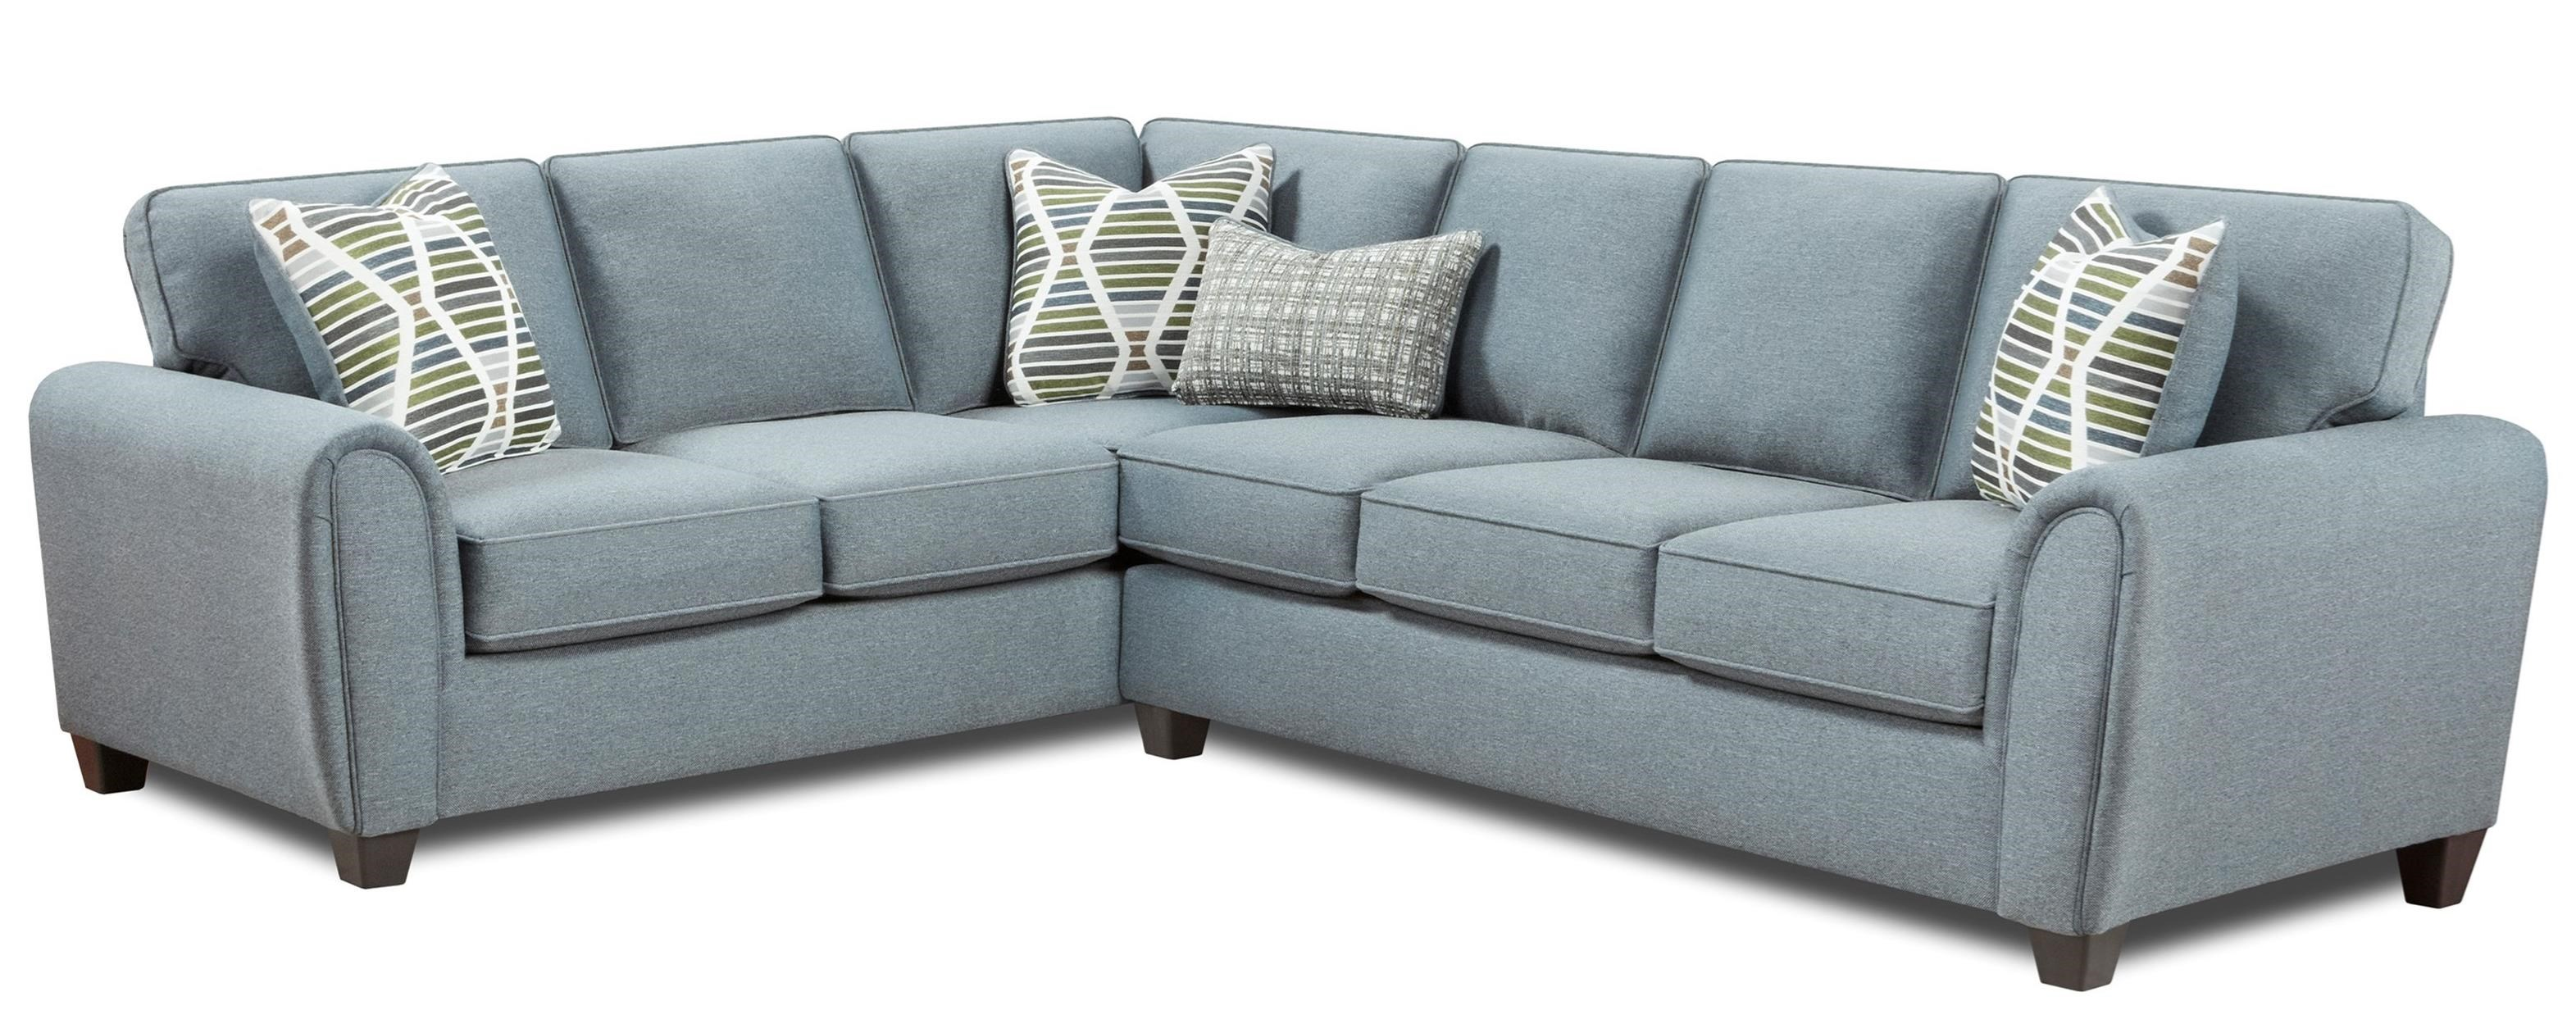 49-00 2-Piece L-Shape Sectional by Fusion Furniture at Hudson's Furniture